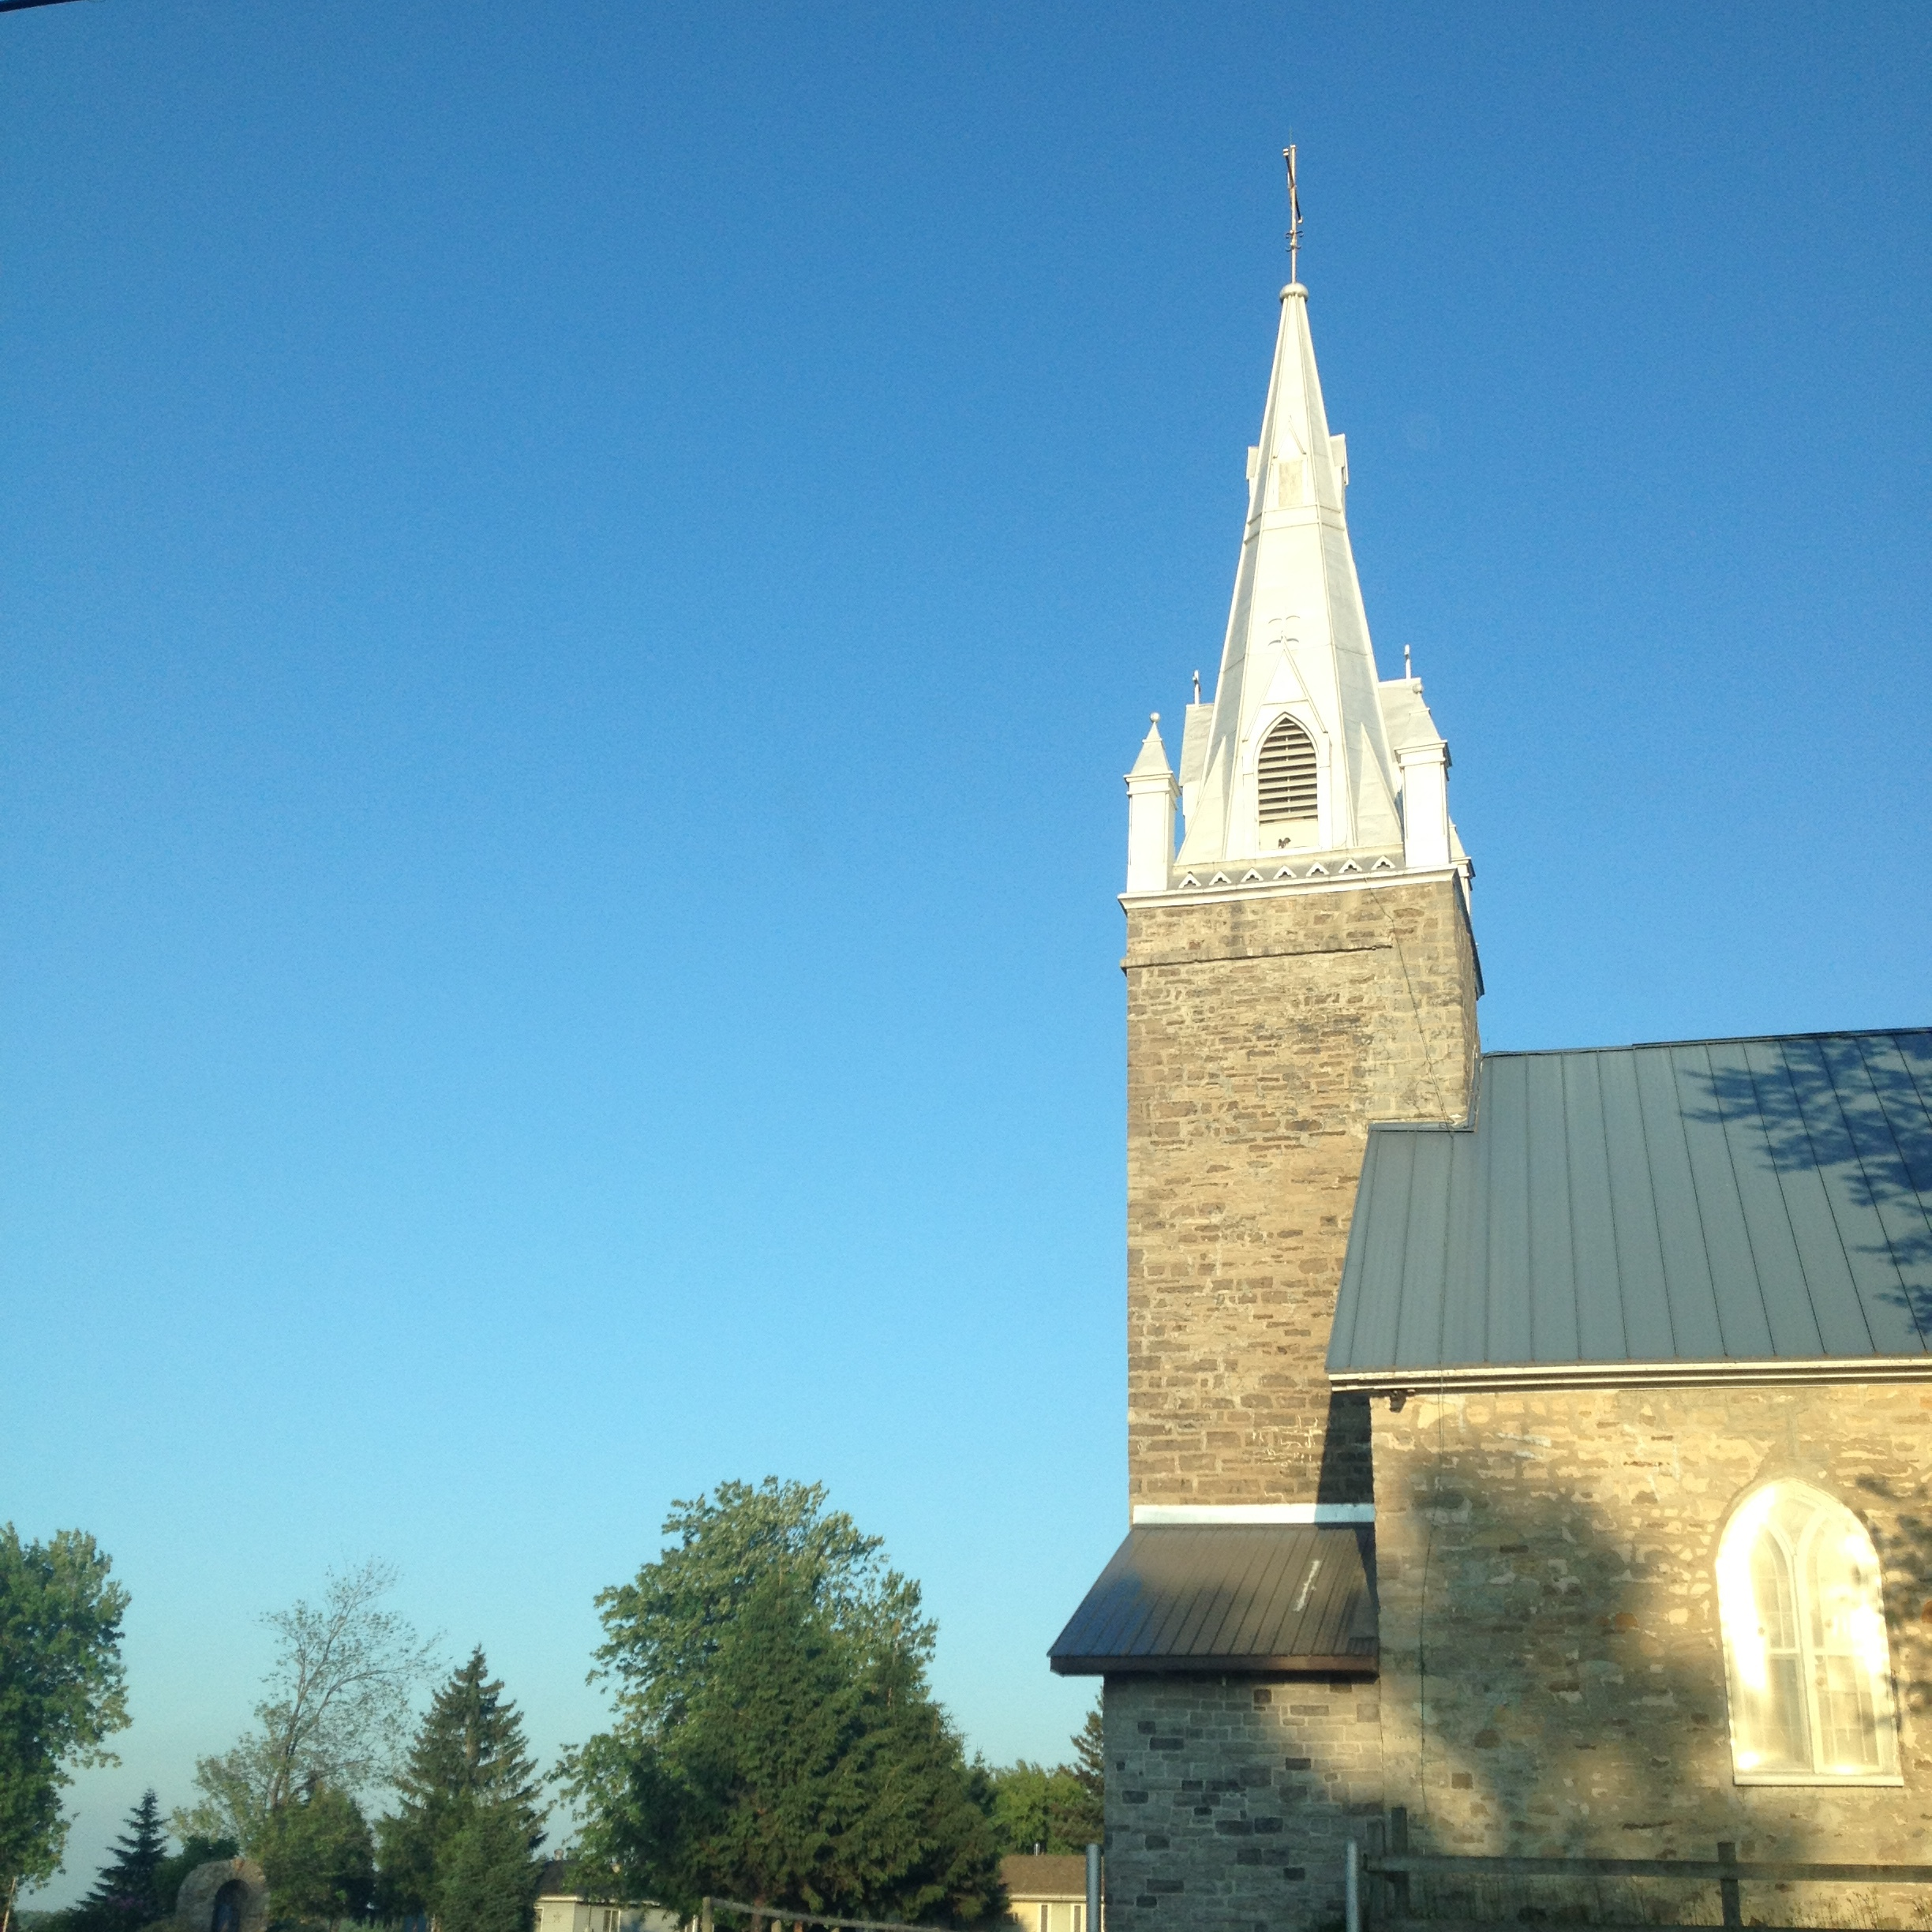 The St. Regis Mohawk Church, located in Kahnawake, Canada.